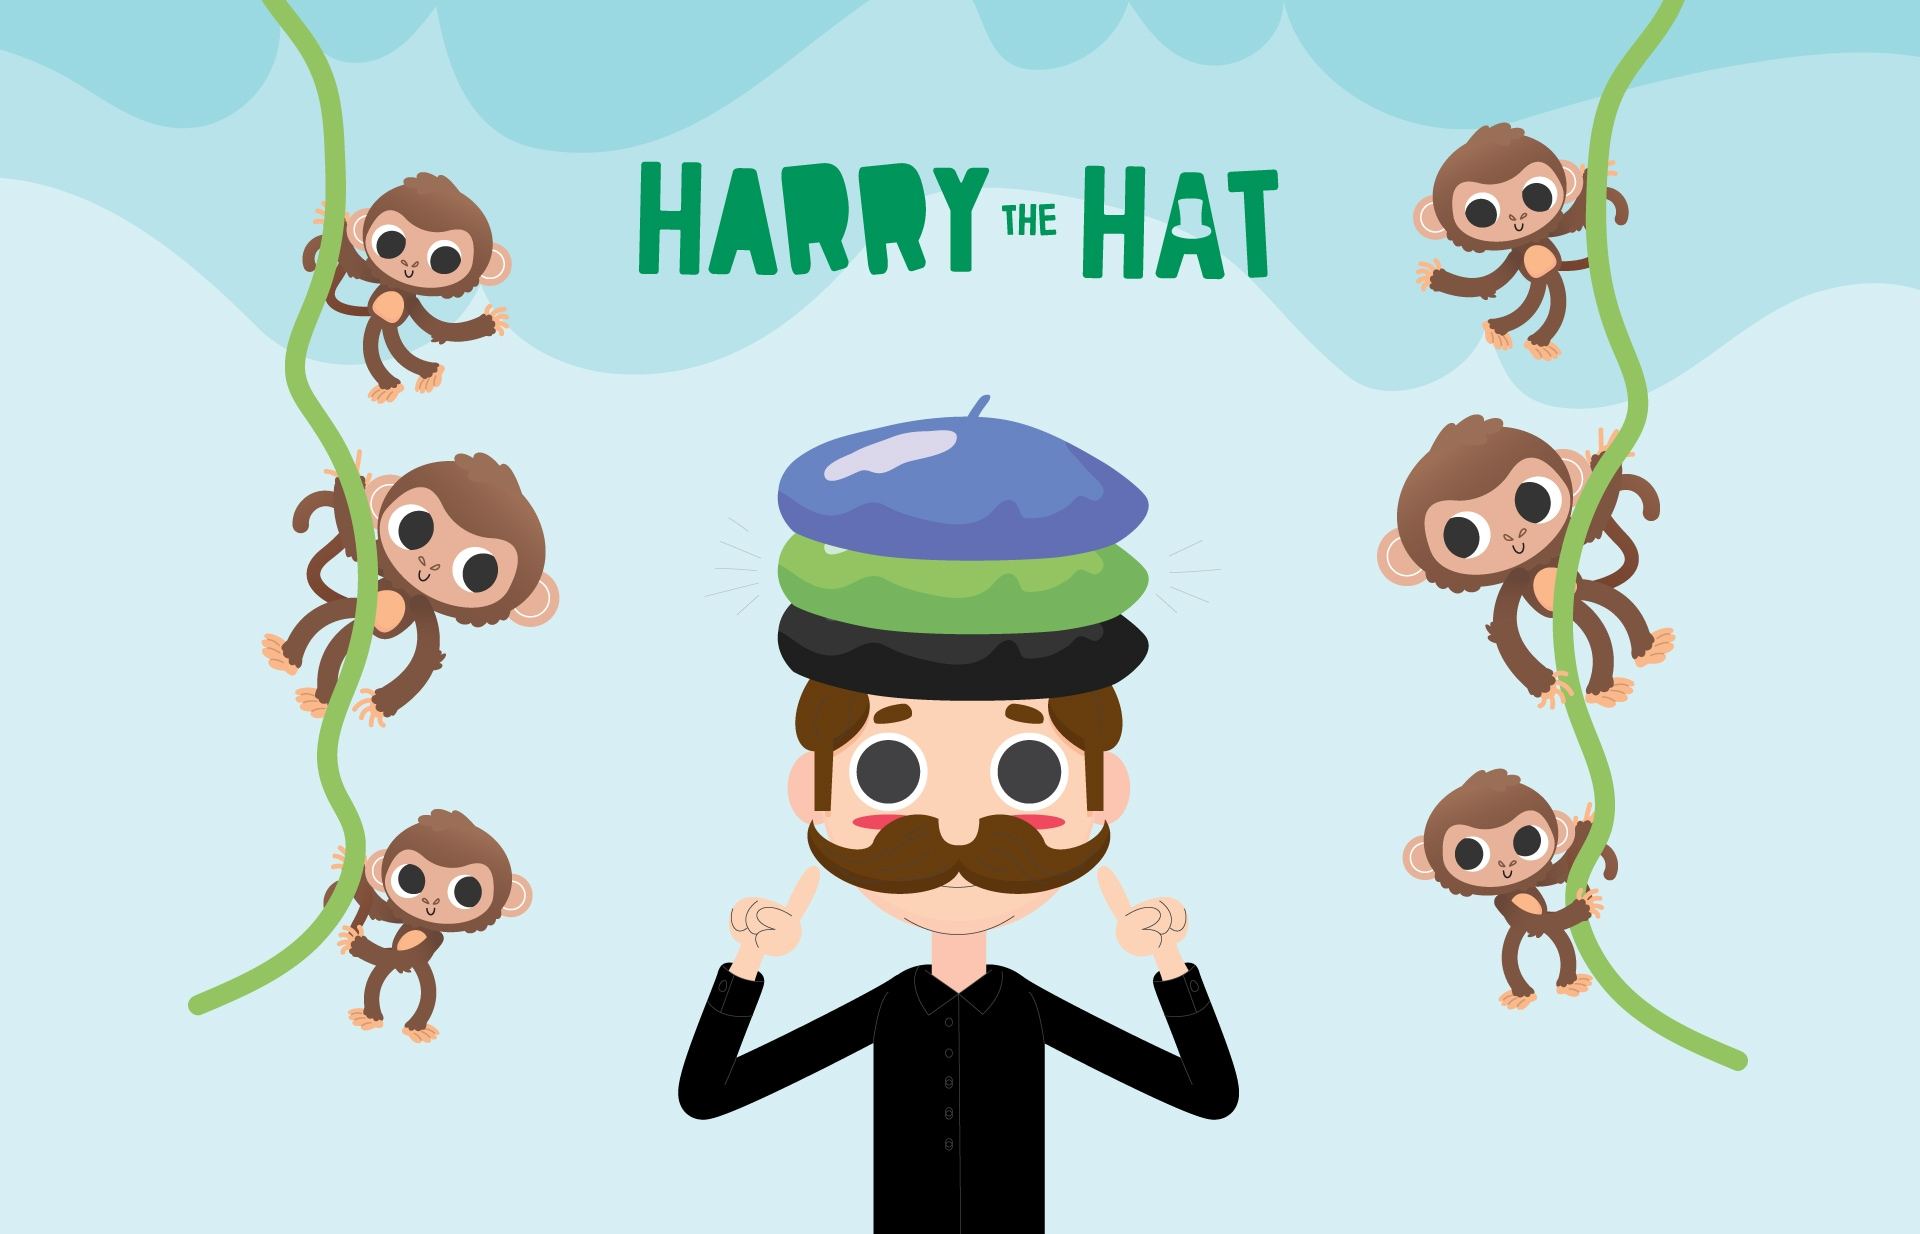 Harry the Hat